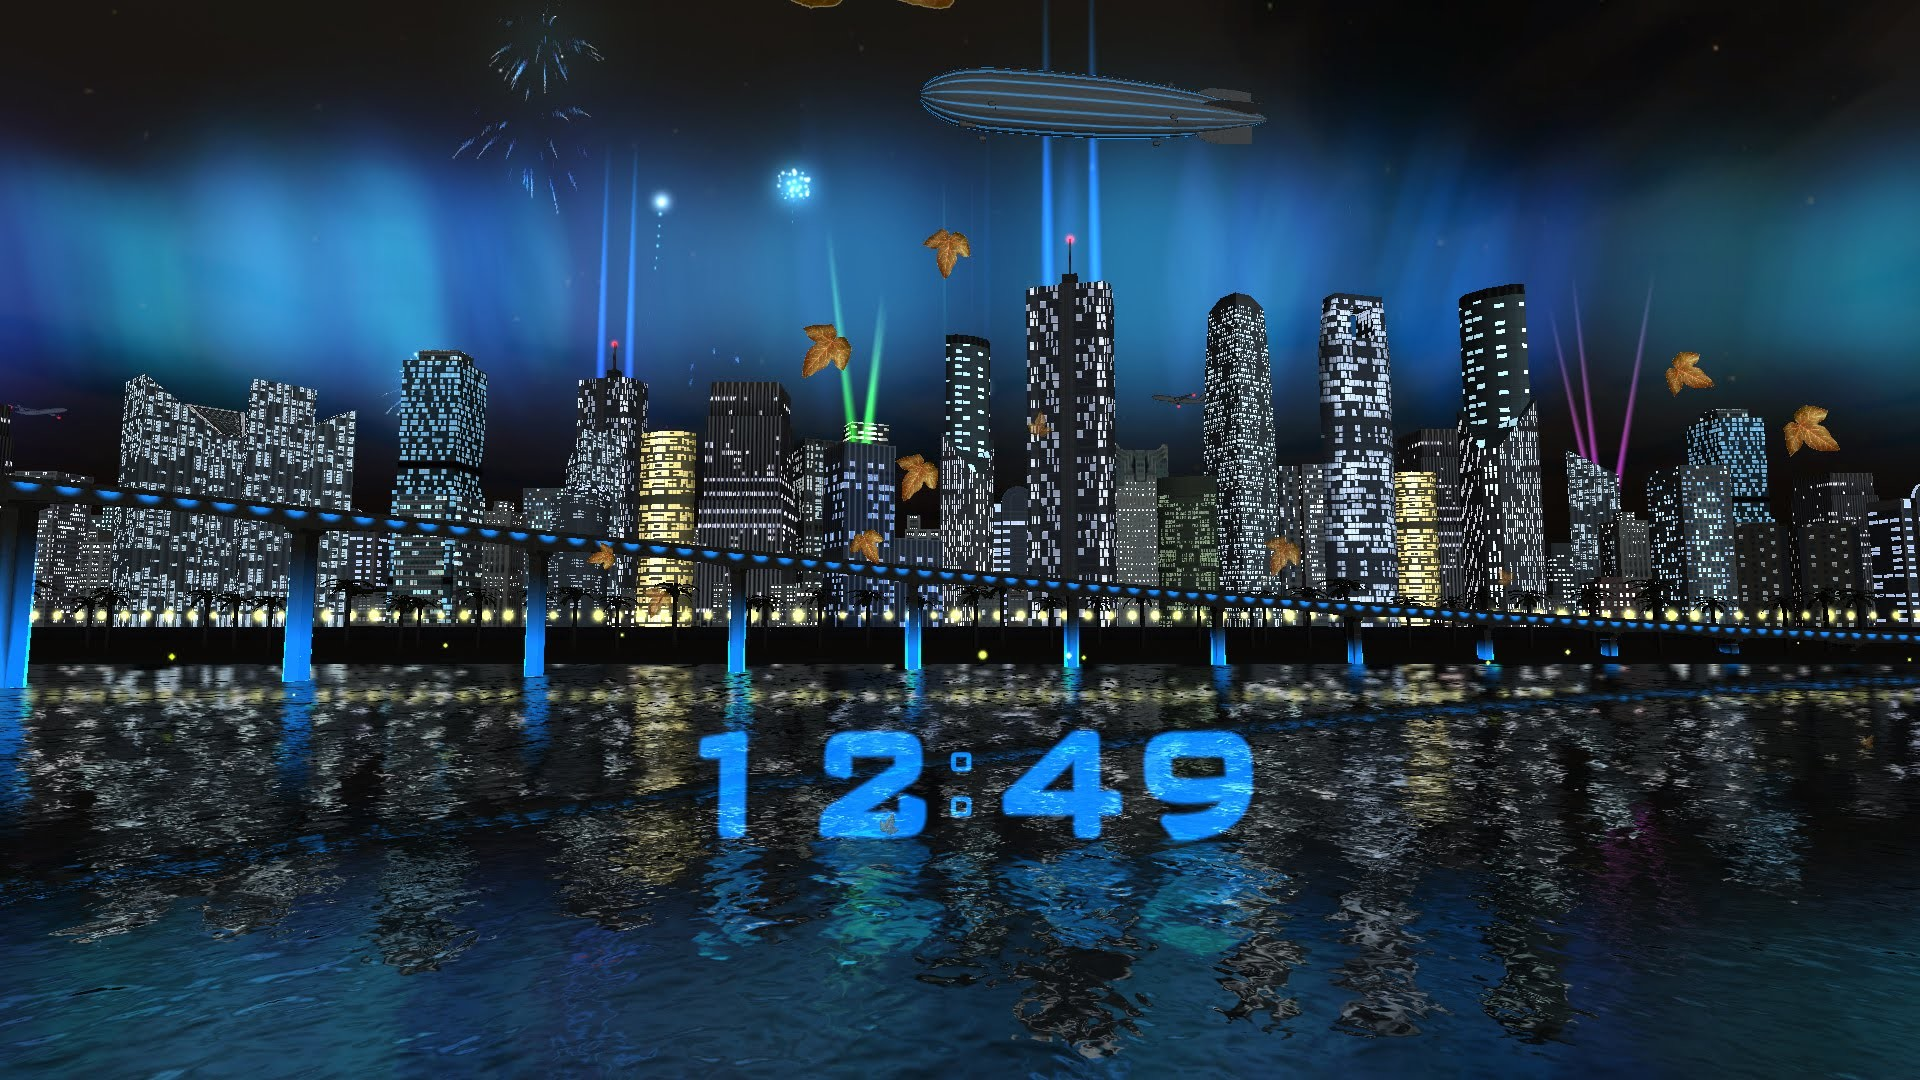 Res: 1920x1080, Day Night City Fireworks LWP (v.1.0.3) - Live wallpaper by Exacron Full HD(1080p)  - YouTube